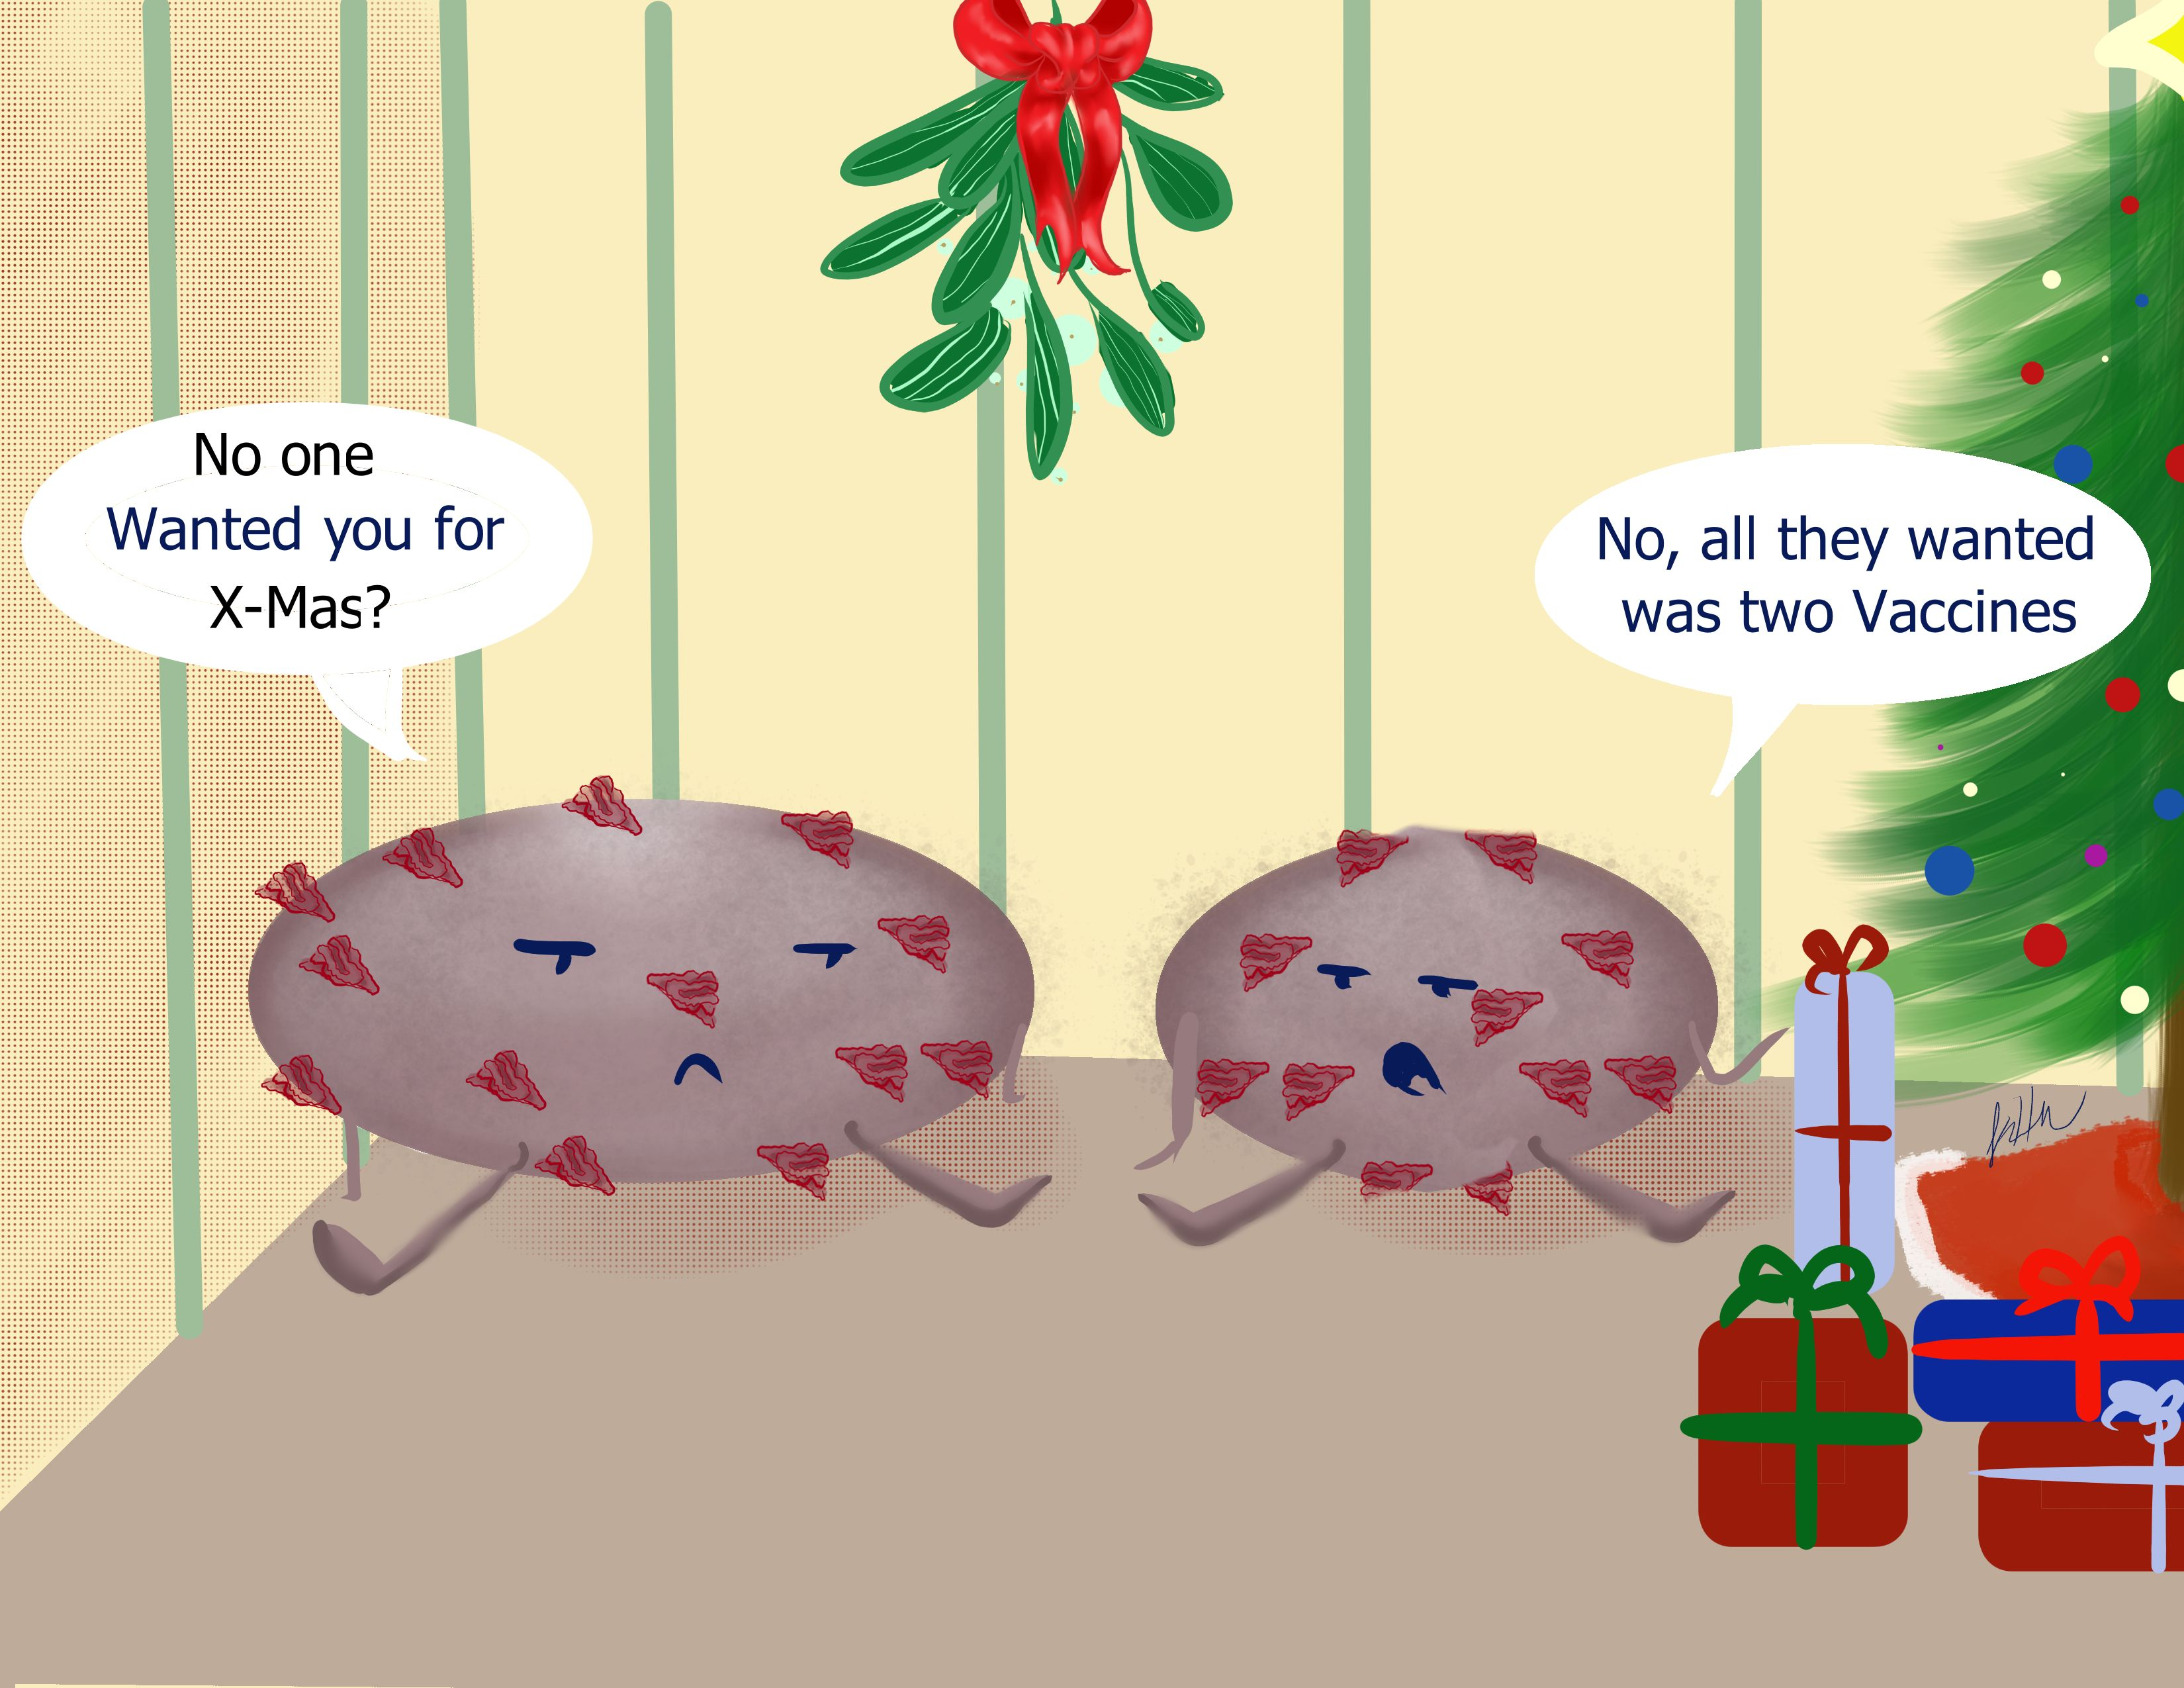 Comic showing two coronavirus sad no one wants to give them as gifts this Xmas.